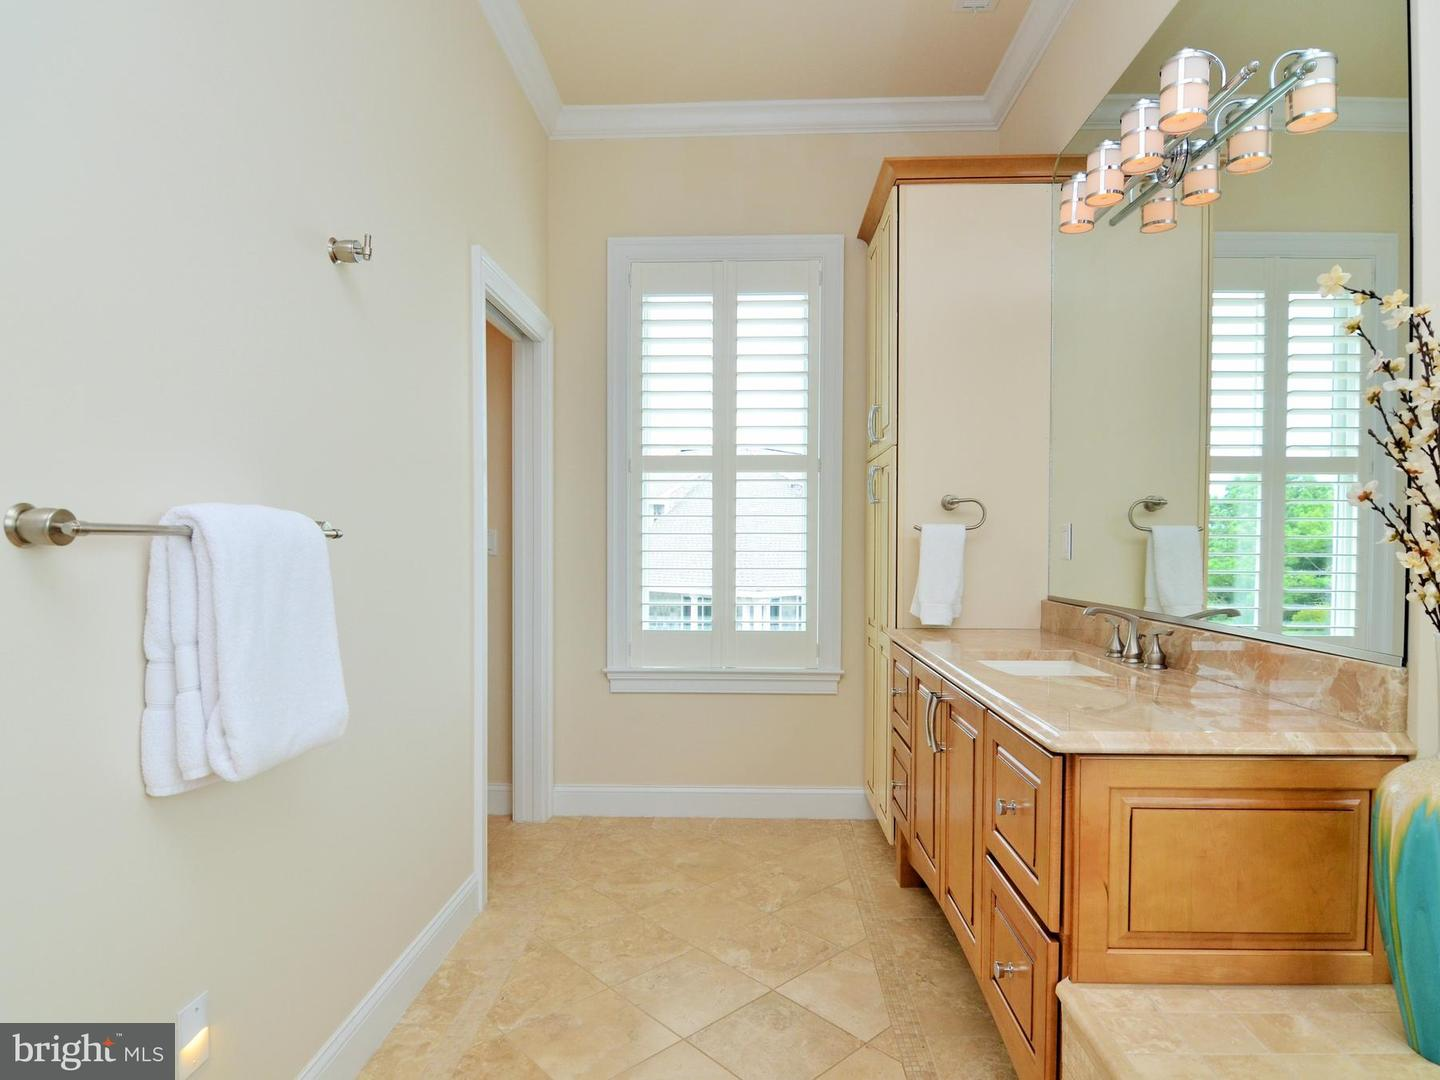 1002293530-300500811757-2018-09-25-15-08-25 31 Hall Ave | Rehoboth Beach, De Real Estate For Sale | MLS# 1002293530  - Suzanne Macnab